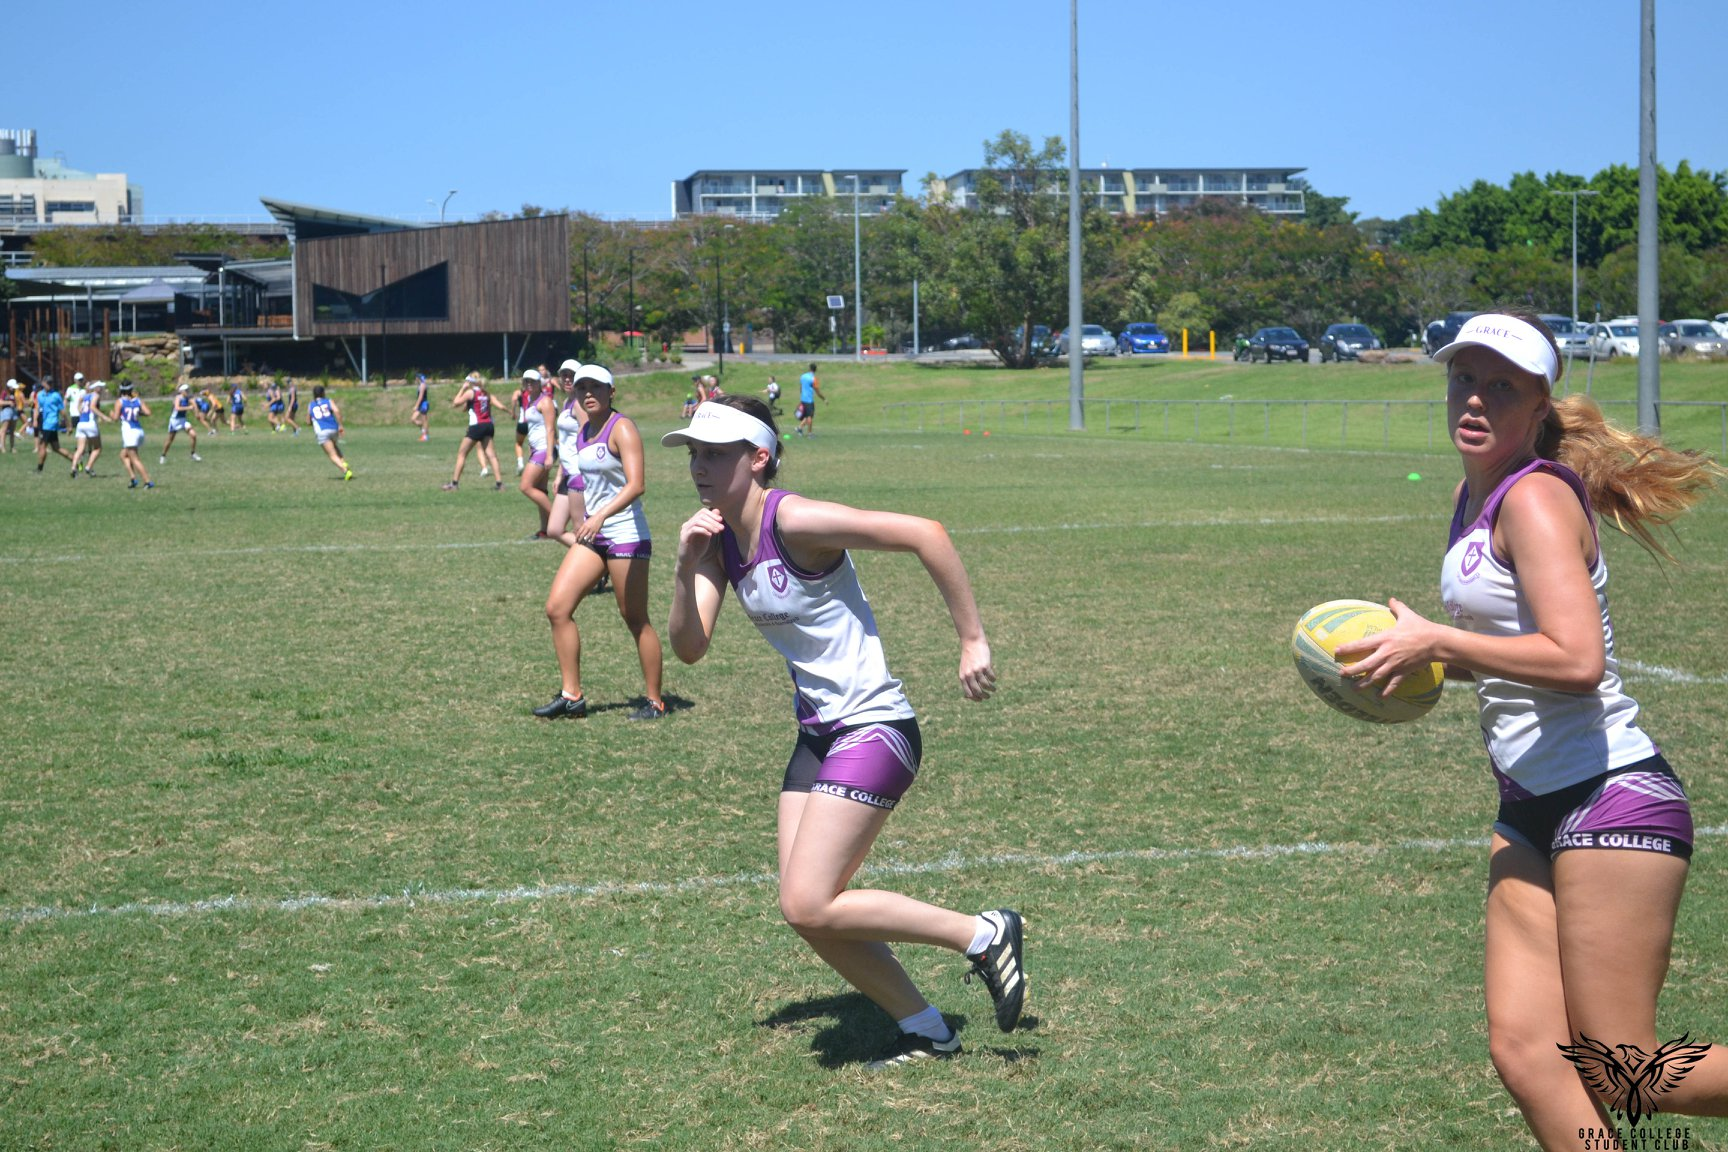 Playing touch football